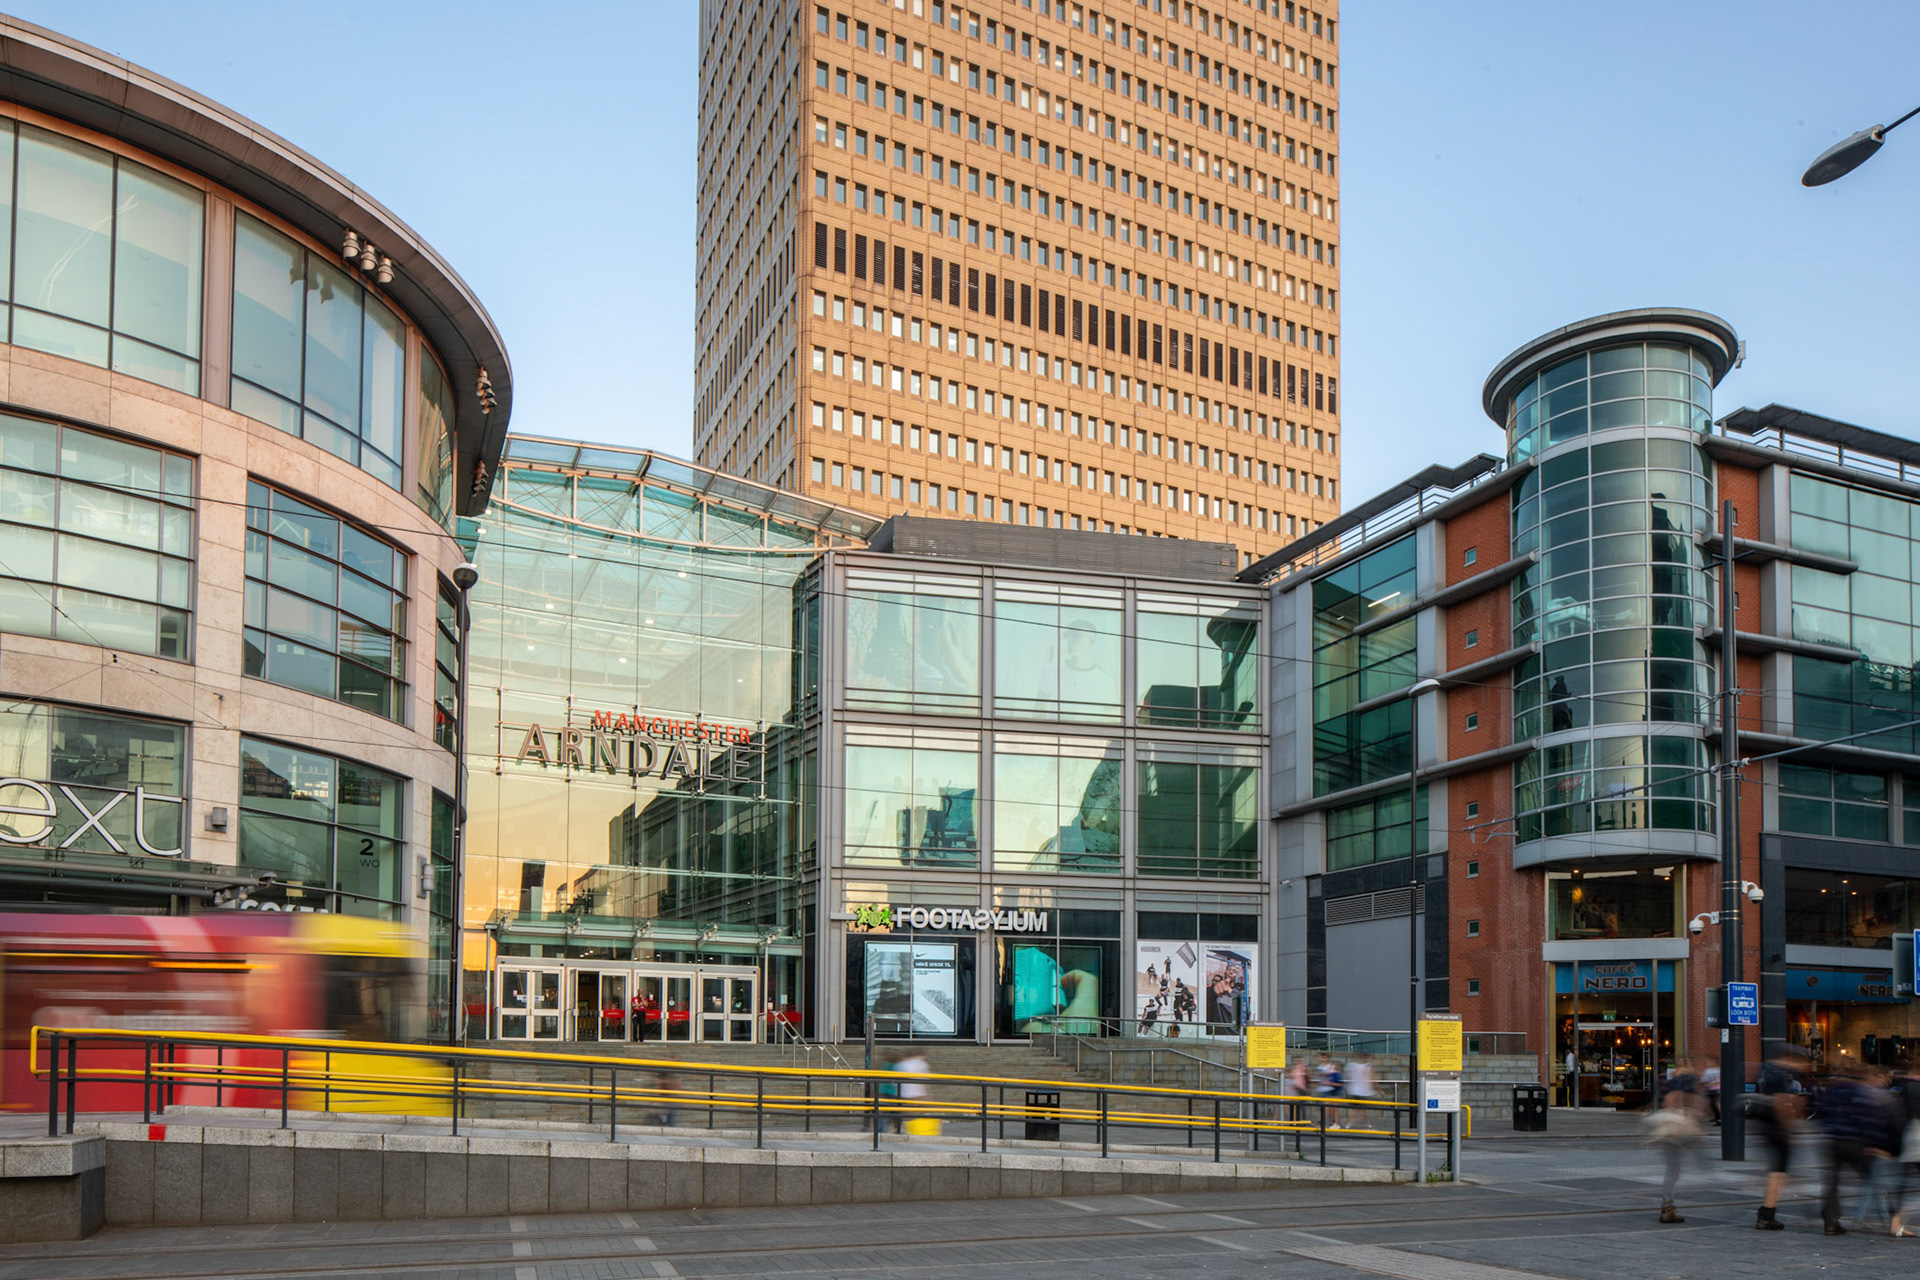 Architecture Photography Manchester Arndale Centre exterior front entrance with tram